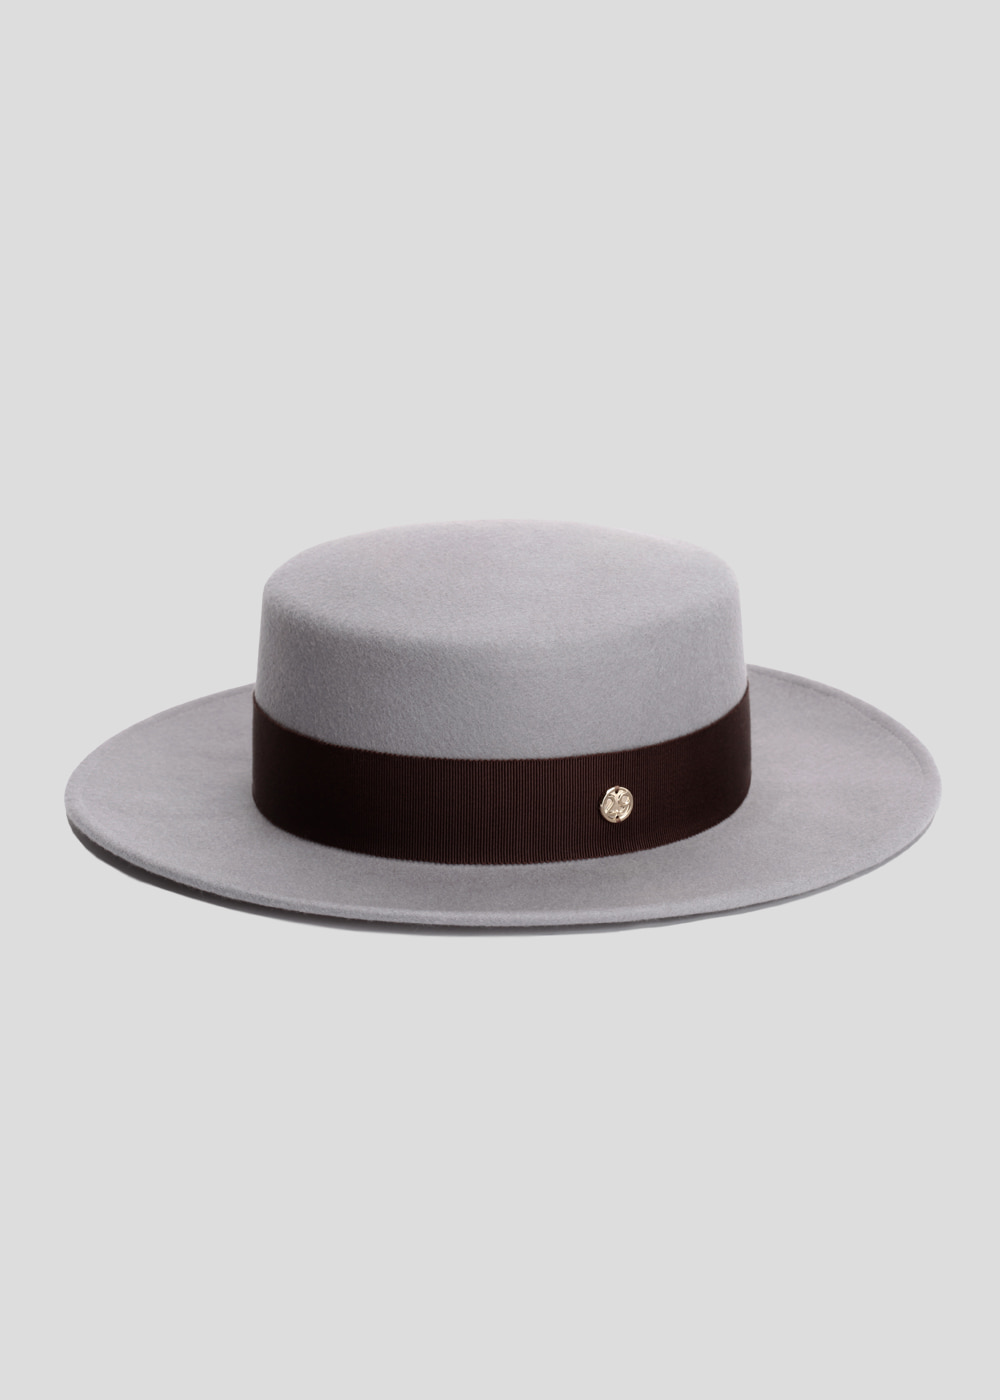 classic boater gray/ dark brown